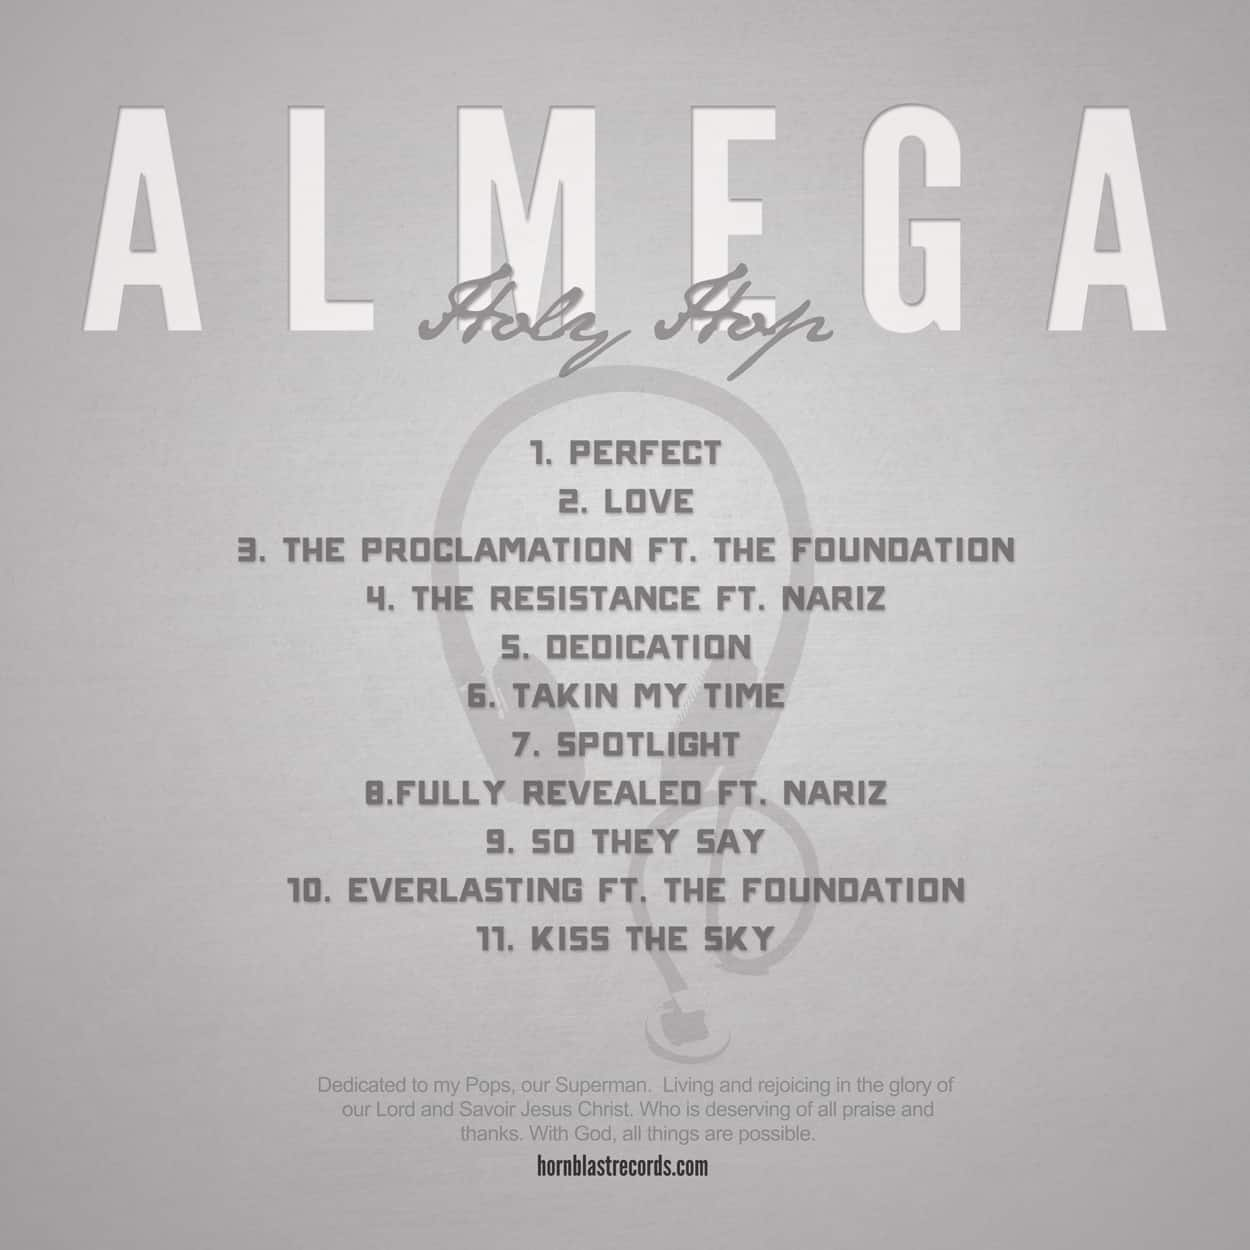 almega - album art design